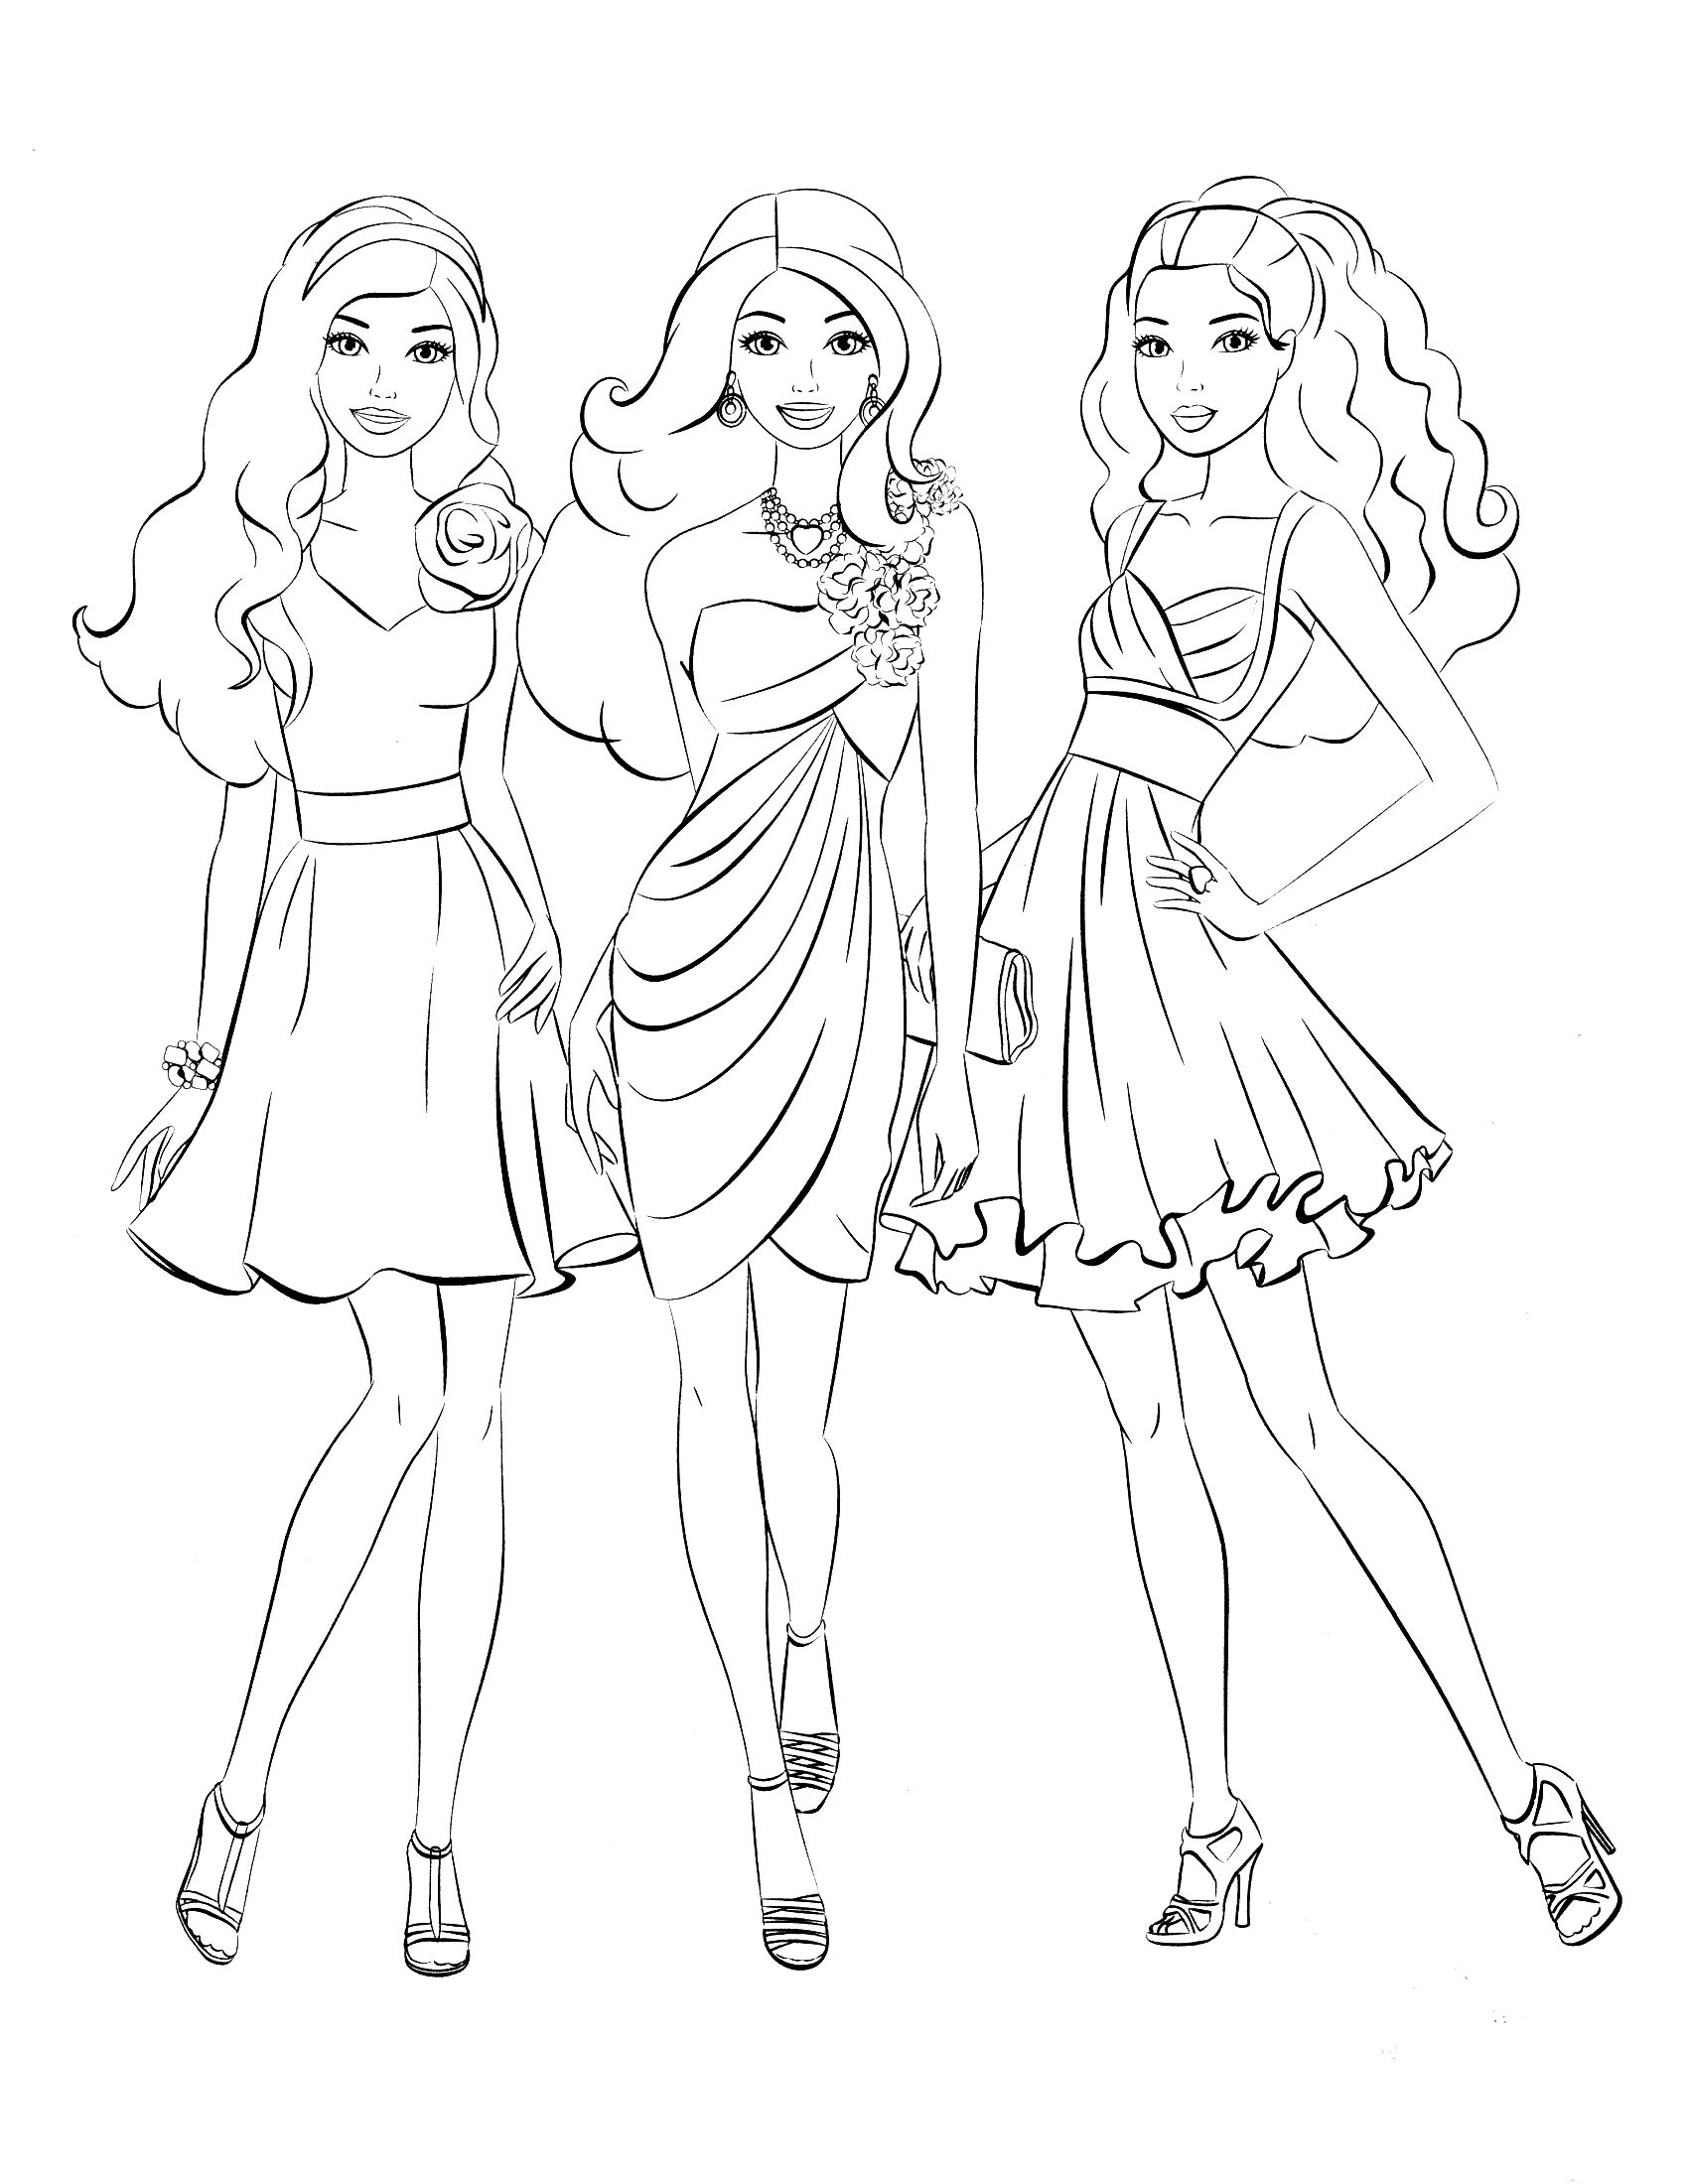 Barbie Ausmalbilder Ausdrucken Kostenlos : Elegant Barbie Coloring Pages Free Large Images Manahil